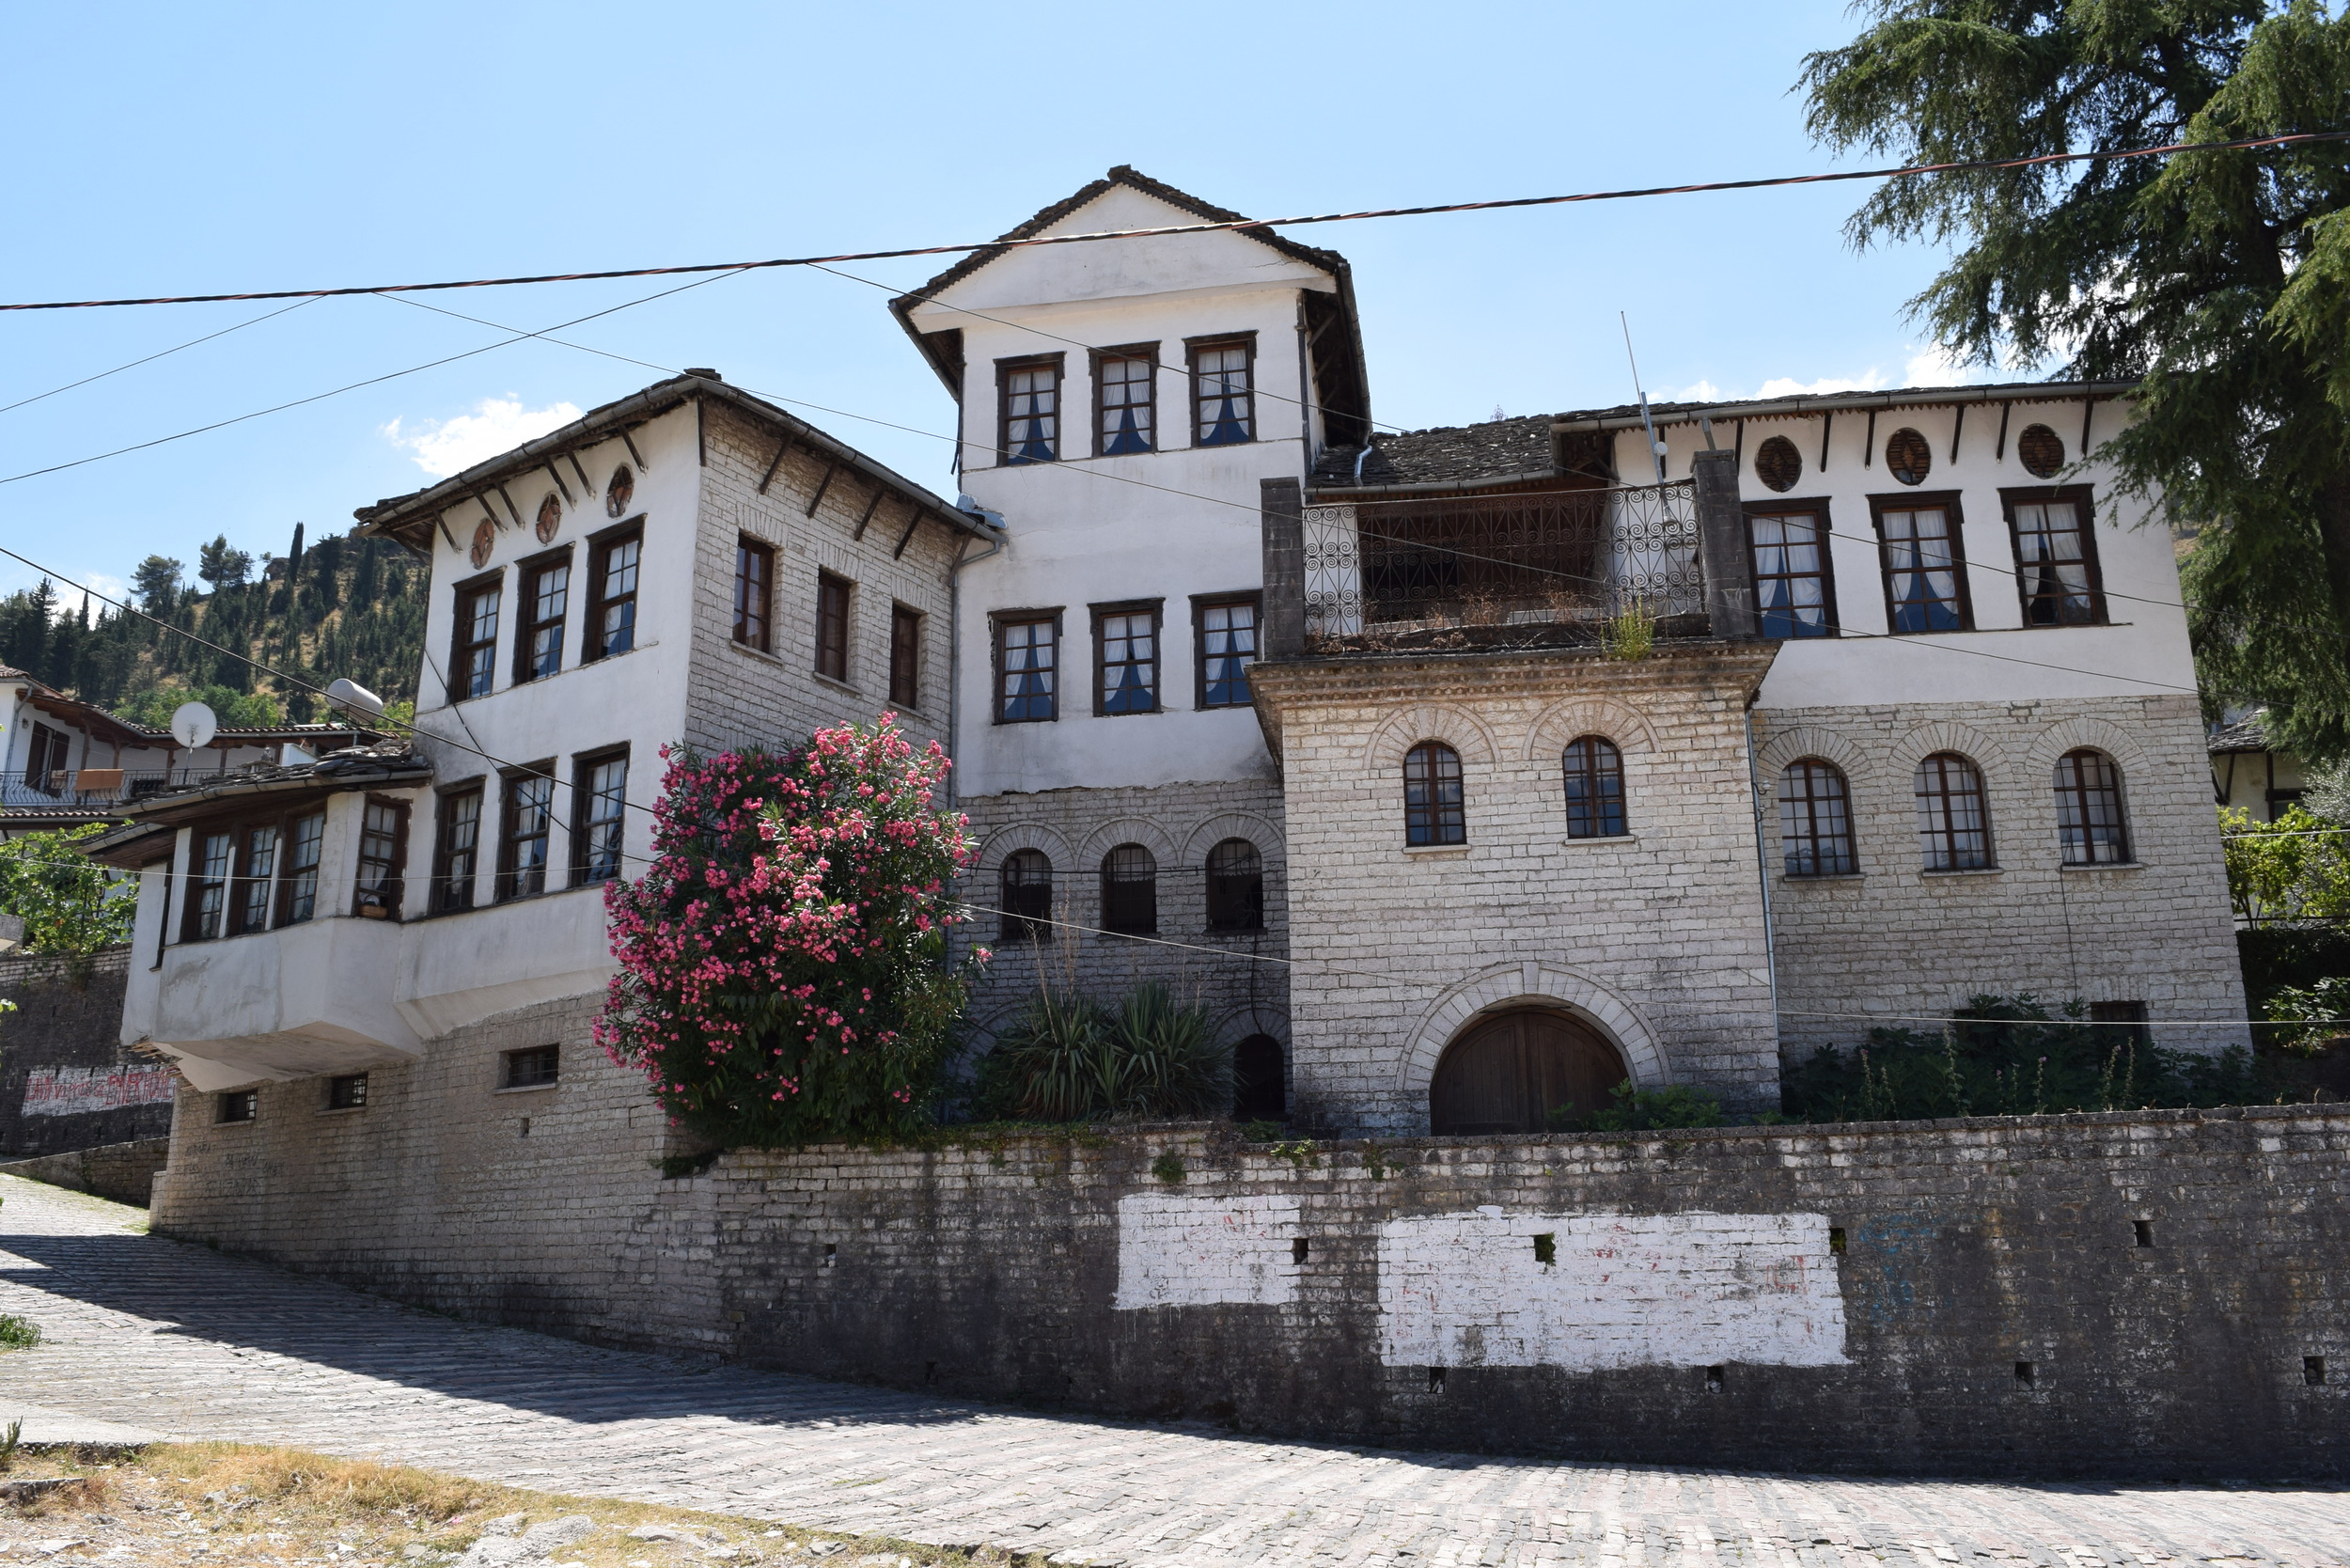 Birthplace of Enver Hoxha (now the Museum of Ethnography)